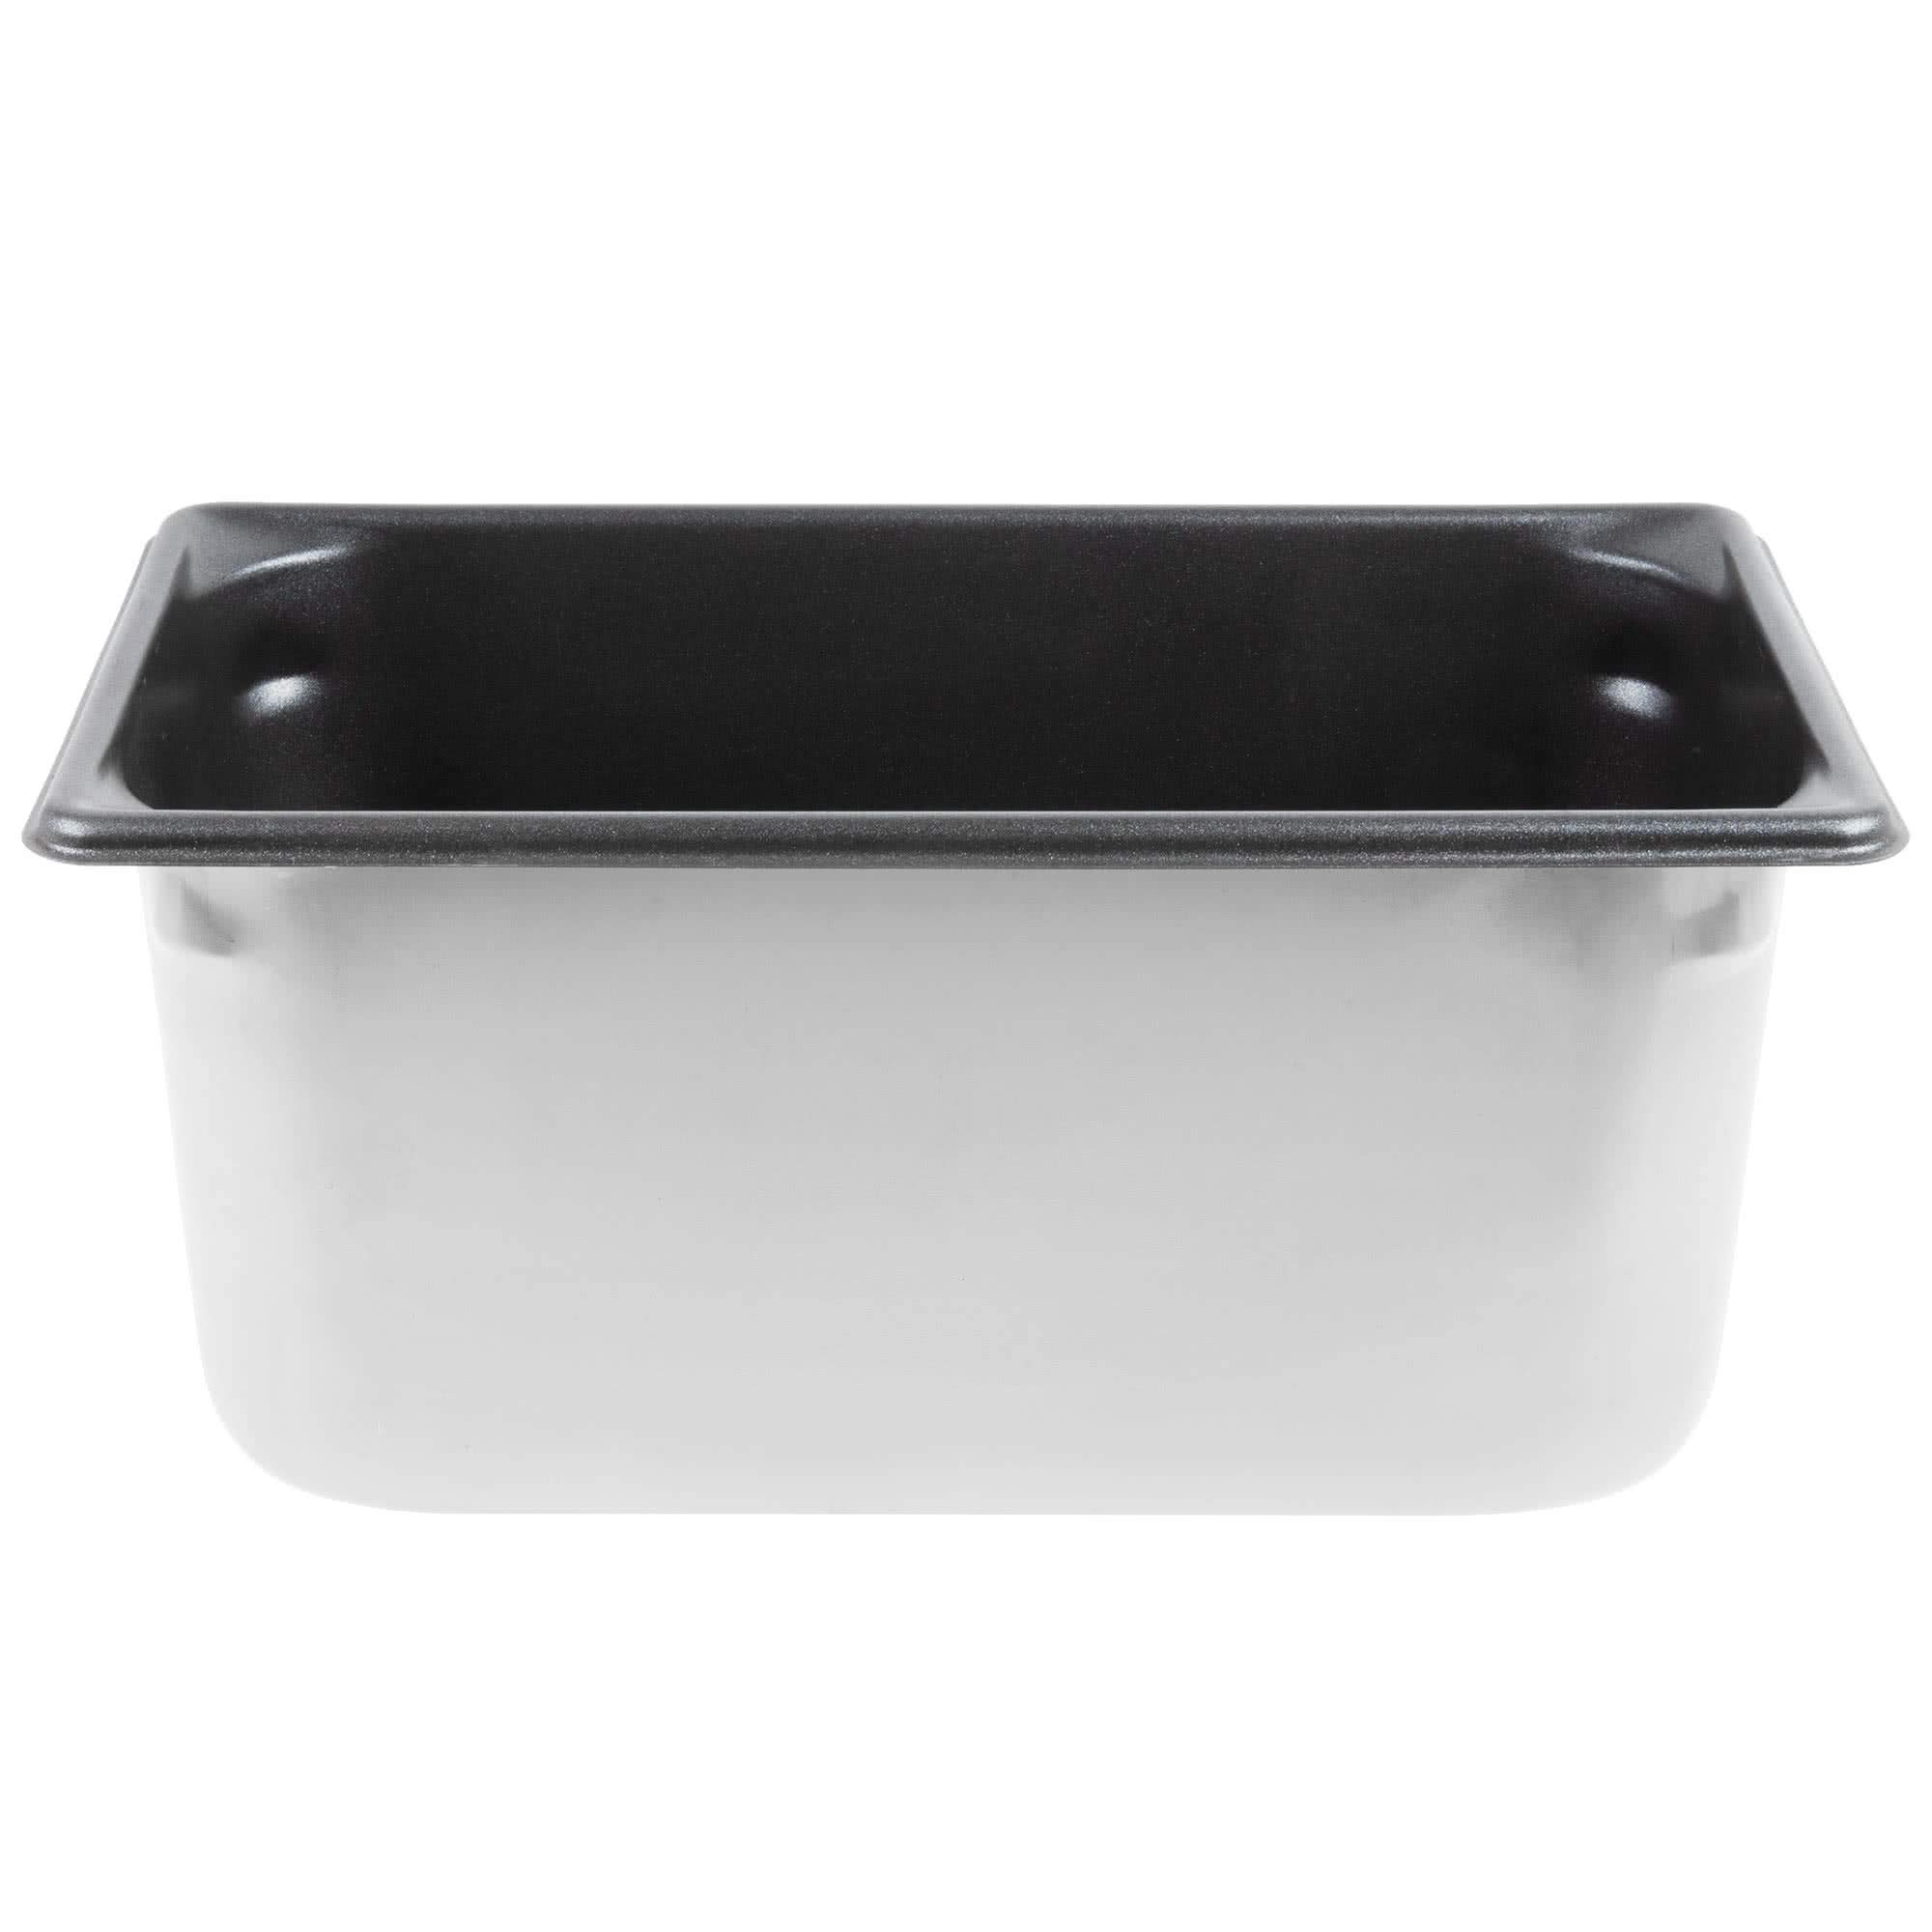 TableTop King 70362 Super Pan V 1/3 Size Anti-Jam Stainless Steel SteelCoat x3 Non-Stick Steam Table/Hotel Pan - 6'' Deep by TableTop King